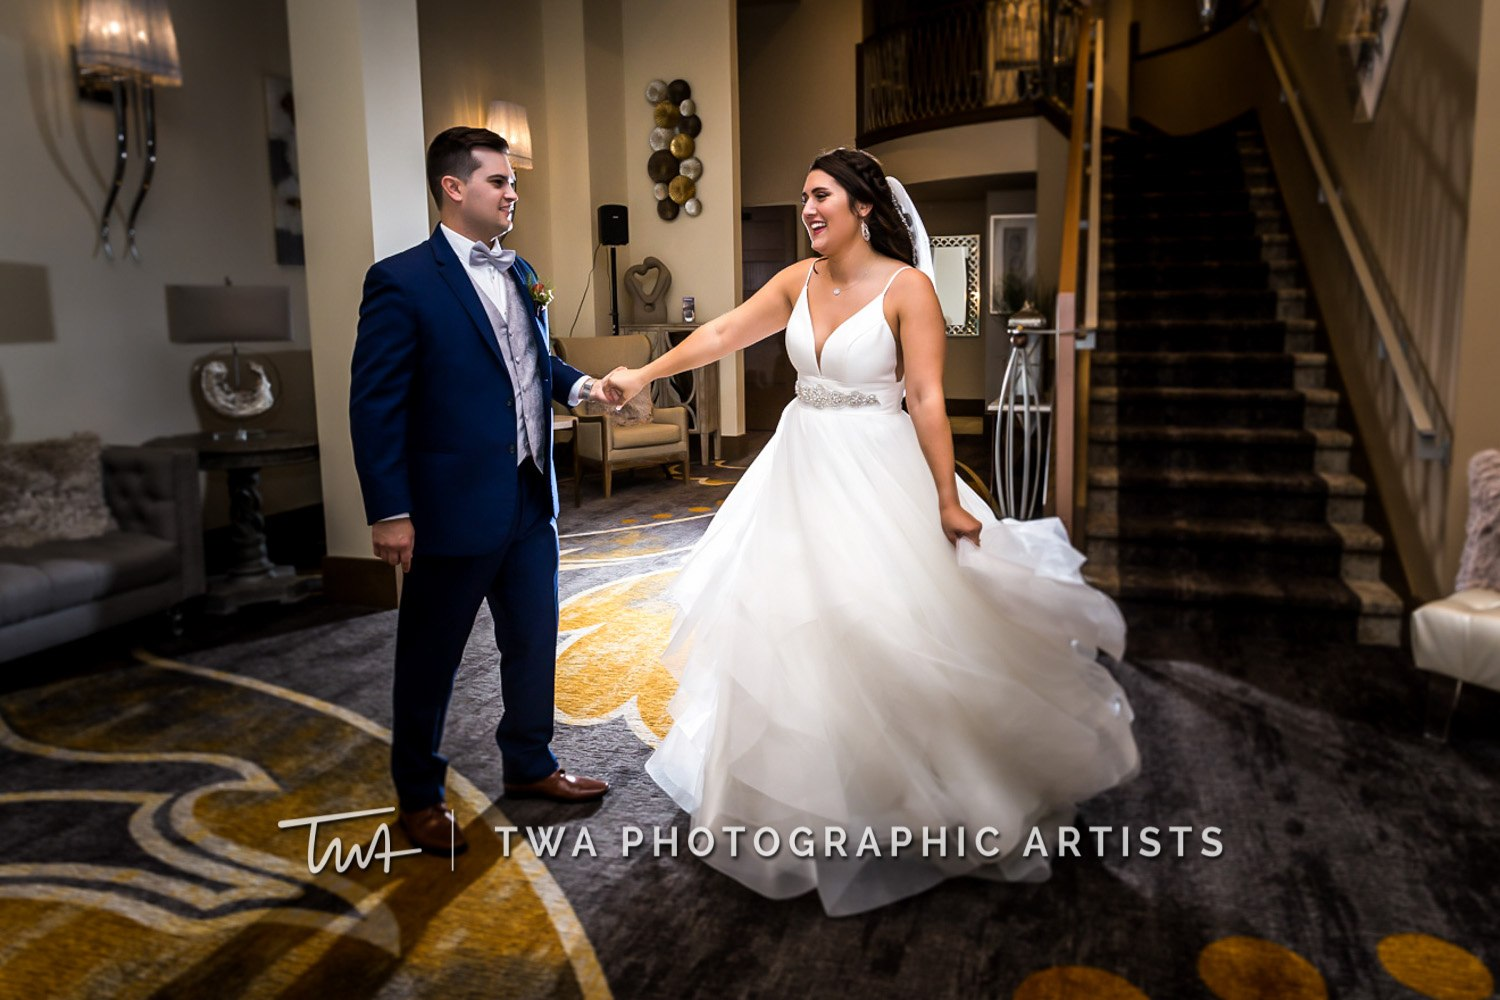 Chicago-Wedding-Photographer-TWA-Photographic-Artists-Avante-Banquets_Zickert_Quaas_MD_SG-1292